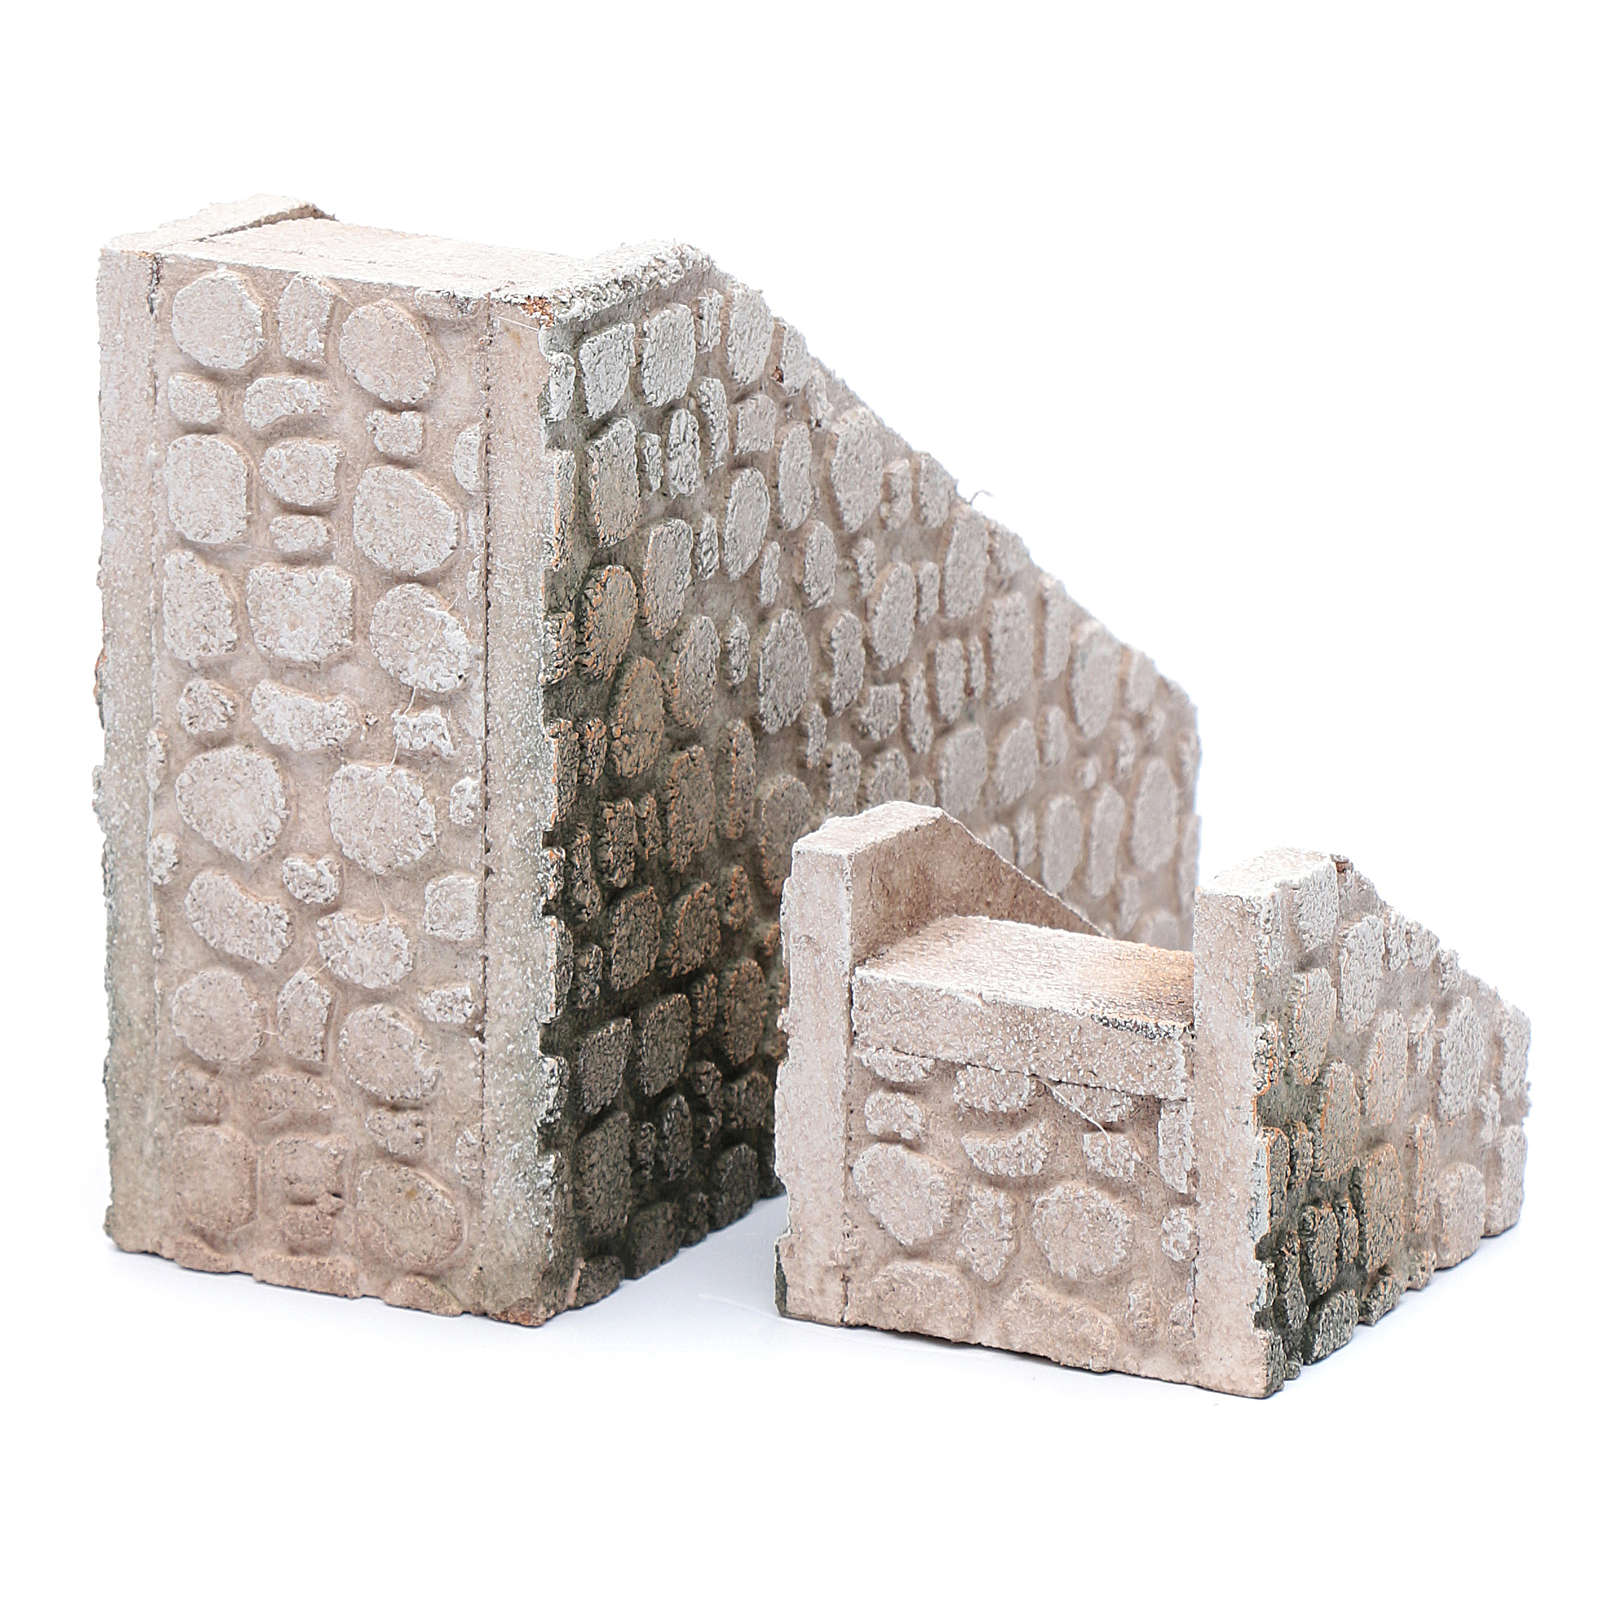 Cork terracotta stairs 2 pieces 4